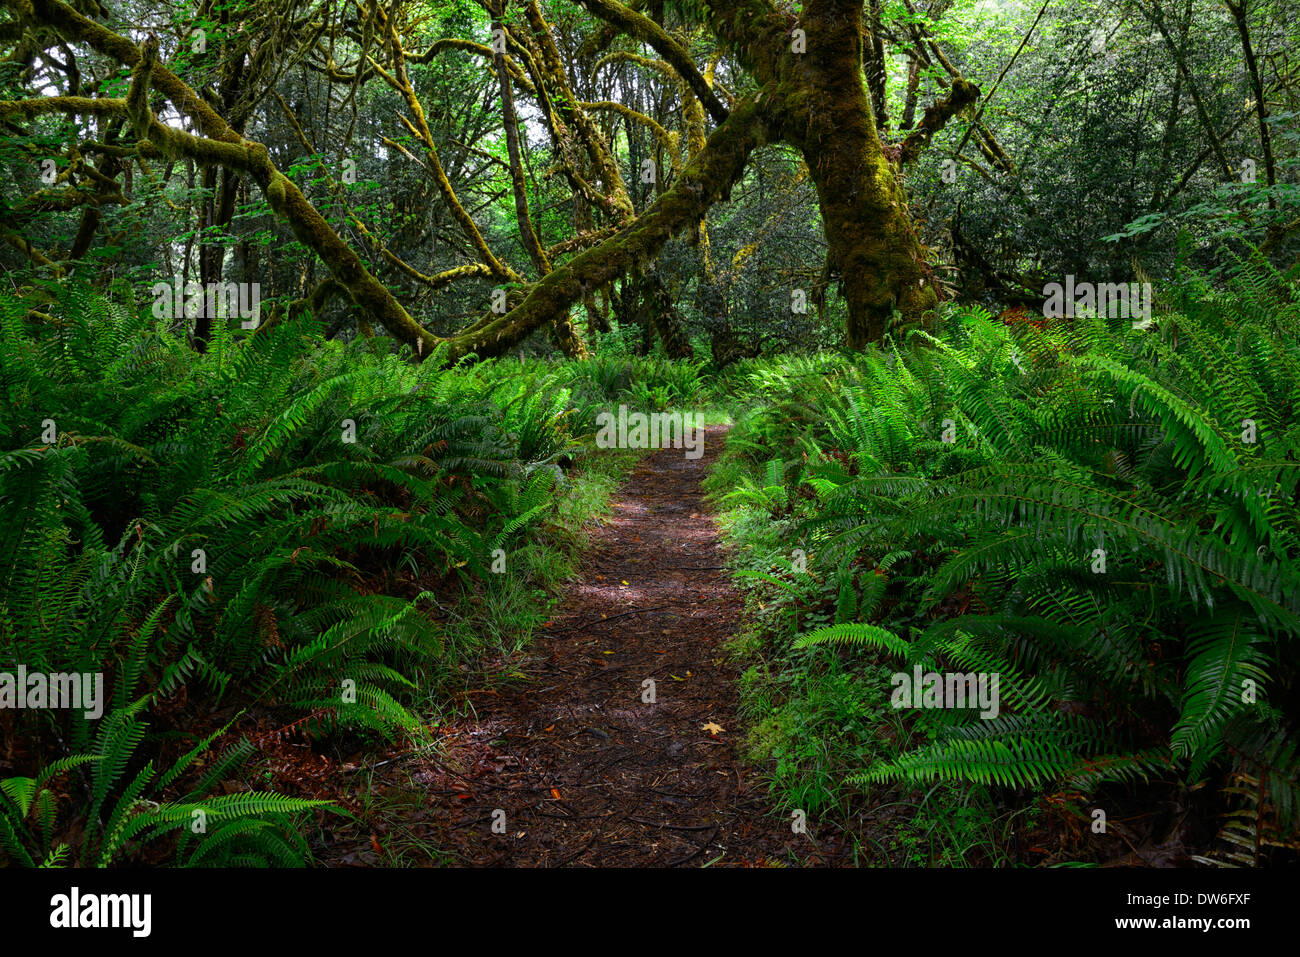 Trail Undergrowth forest floor Del Norte Coast Redwood State Park sword fern polystichum munitum oxalis oregana coastal redwoods - Stock Image